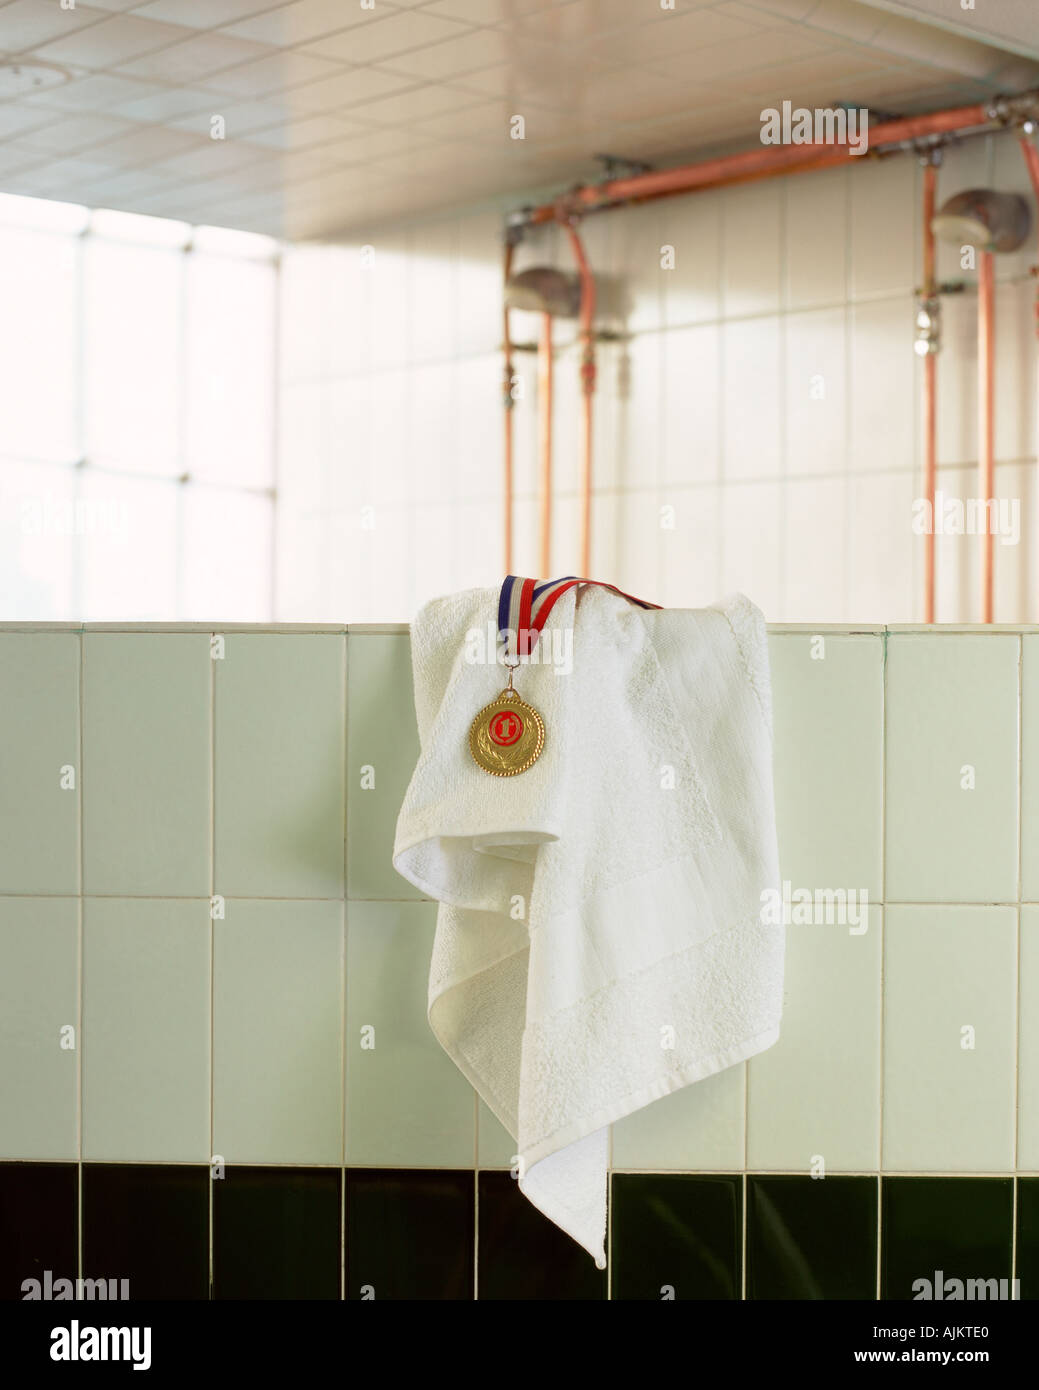 Medal and towel on wall - Stock Image